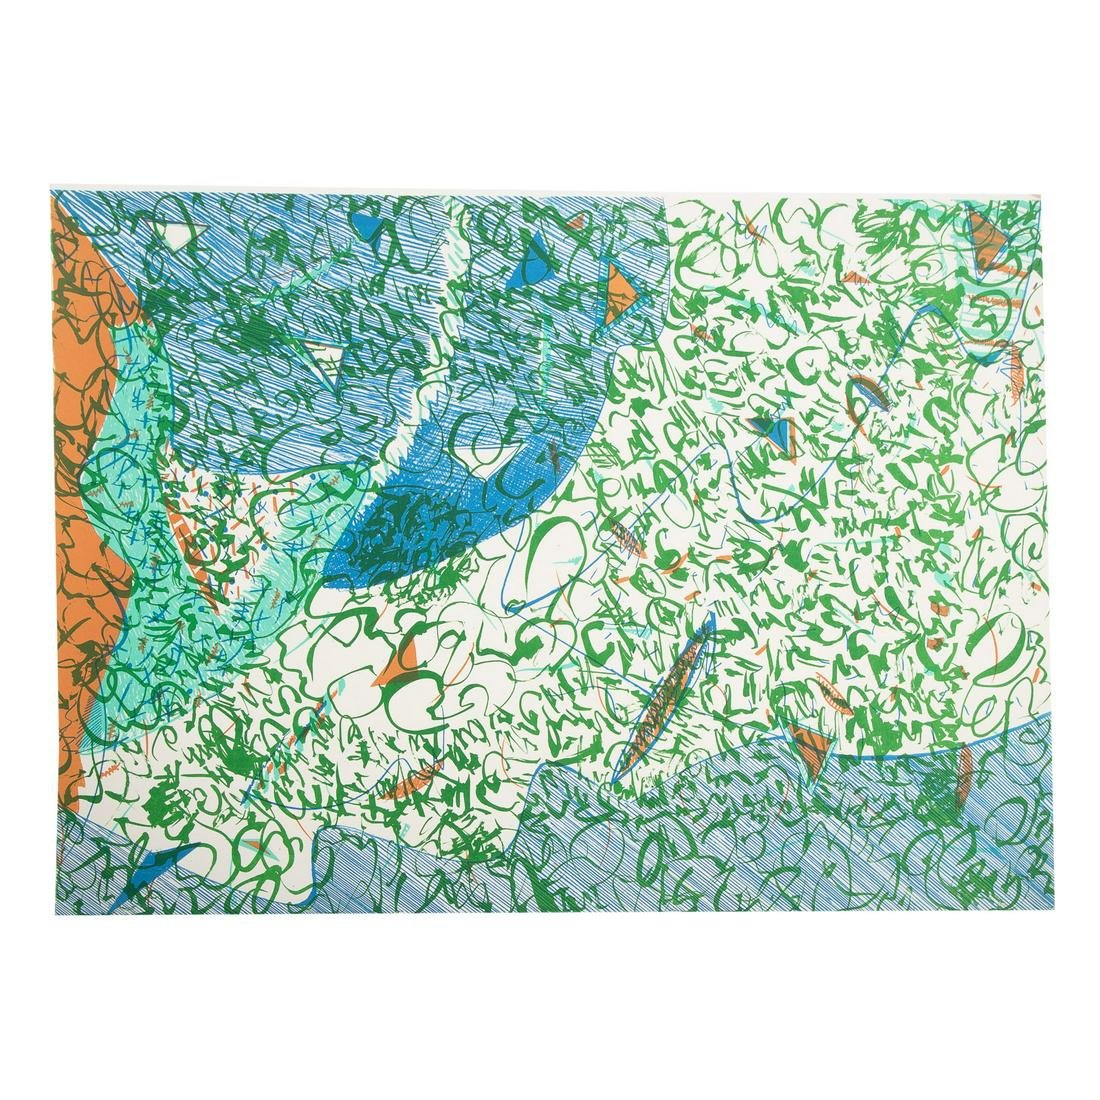 EJ Montgomery. Untitled Abstract in Blue and Green